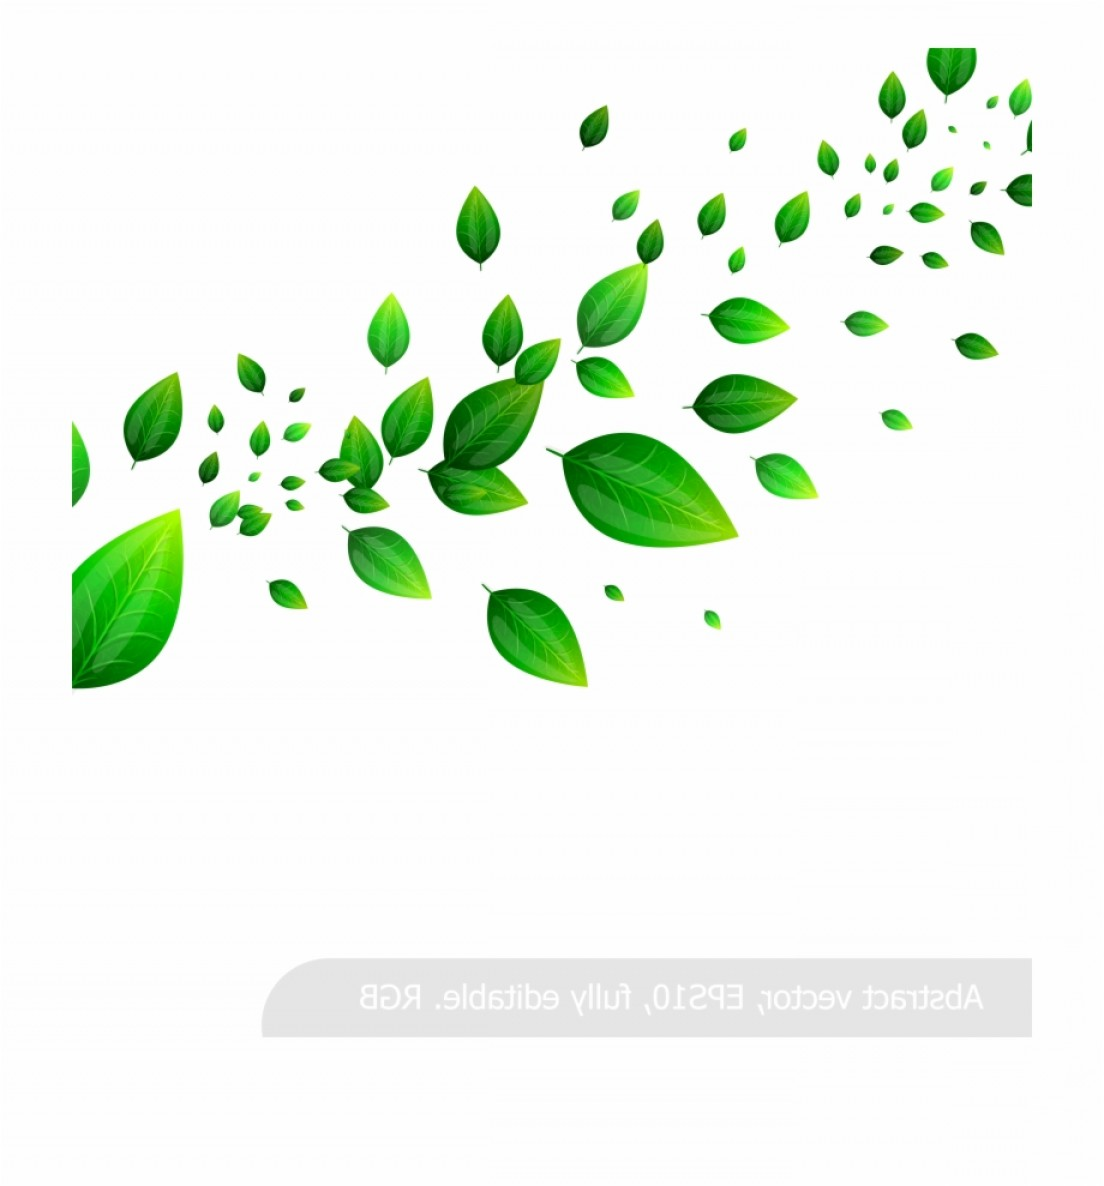 Vector Leaf Graphicd: Hjtbrrleaf Leaves Material When Vector Green Fresh Clipart